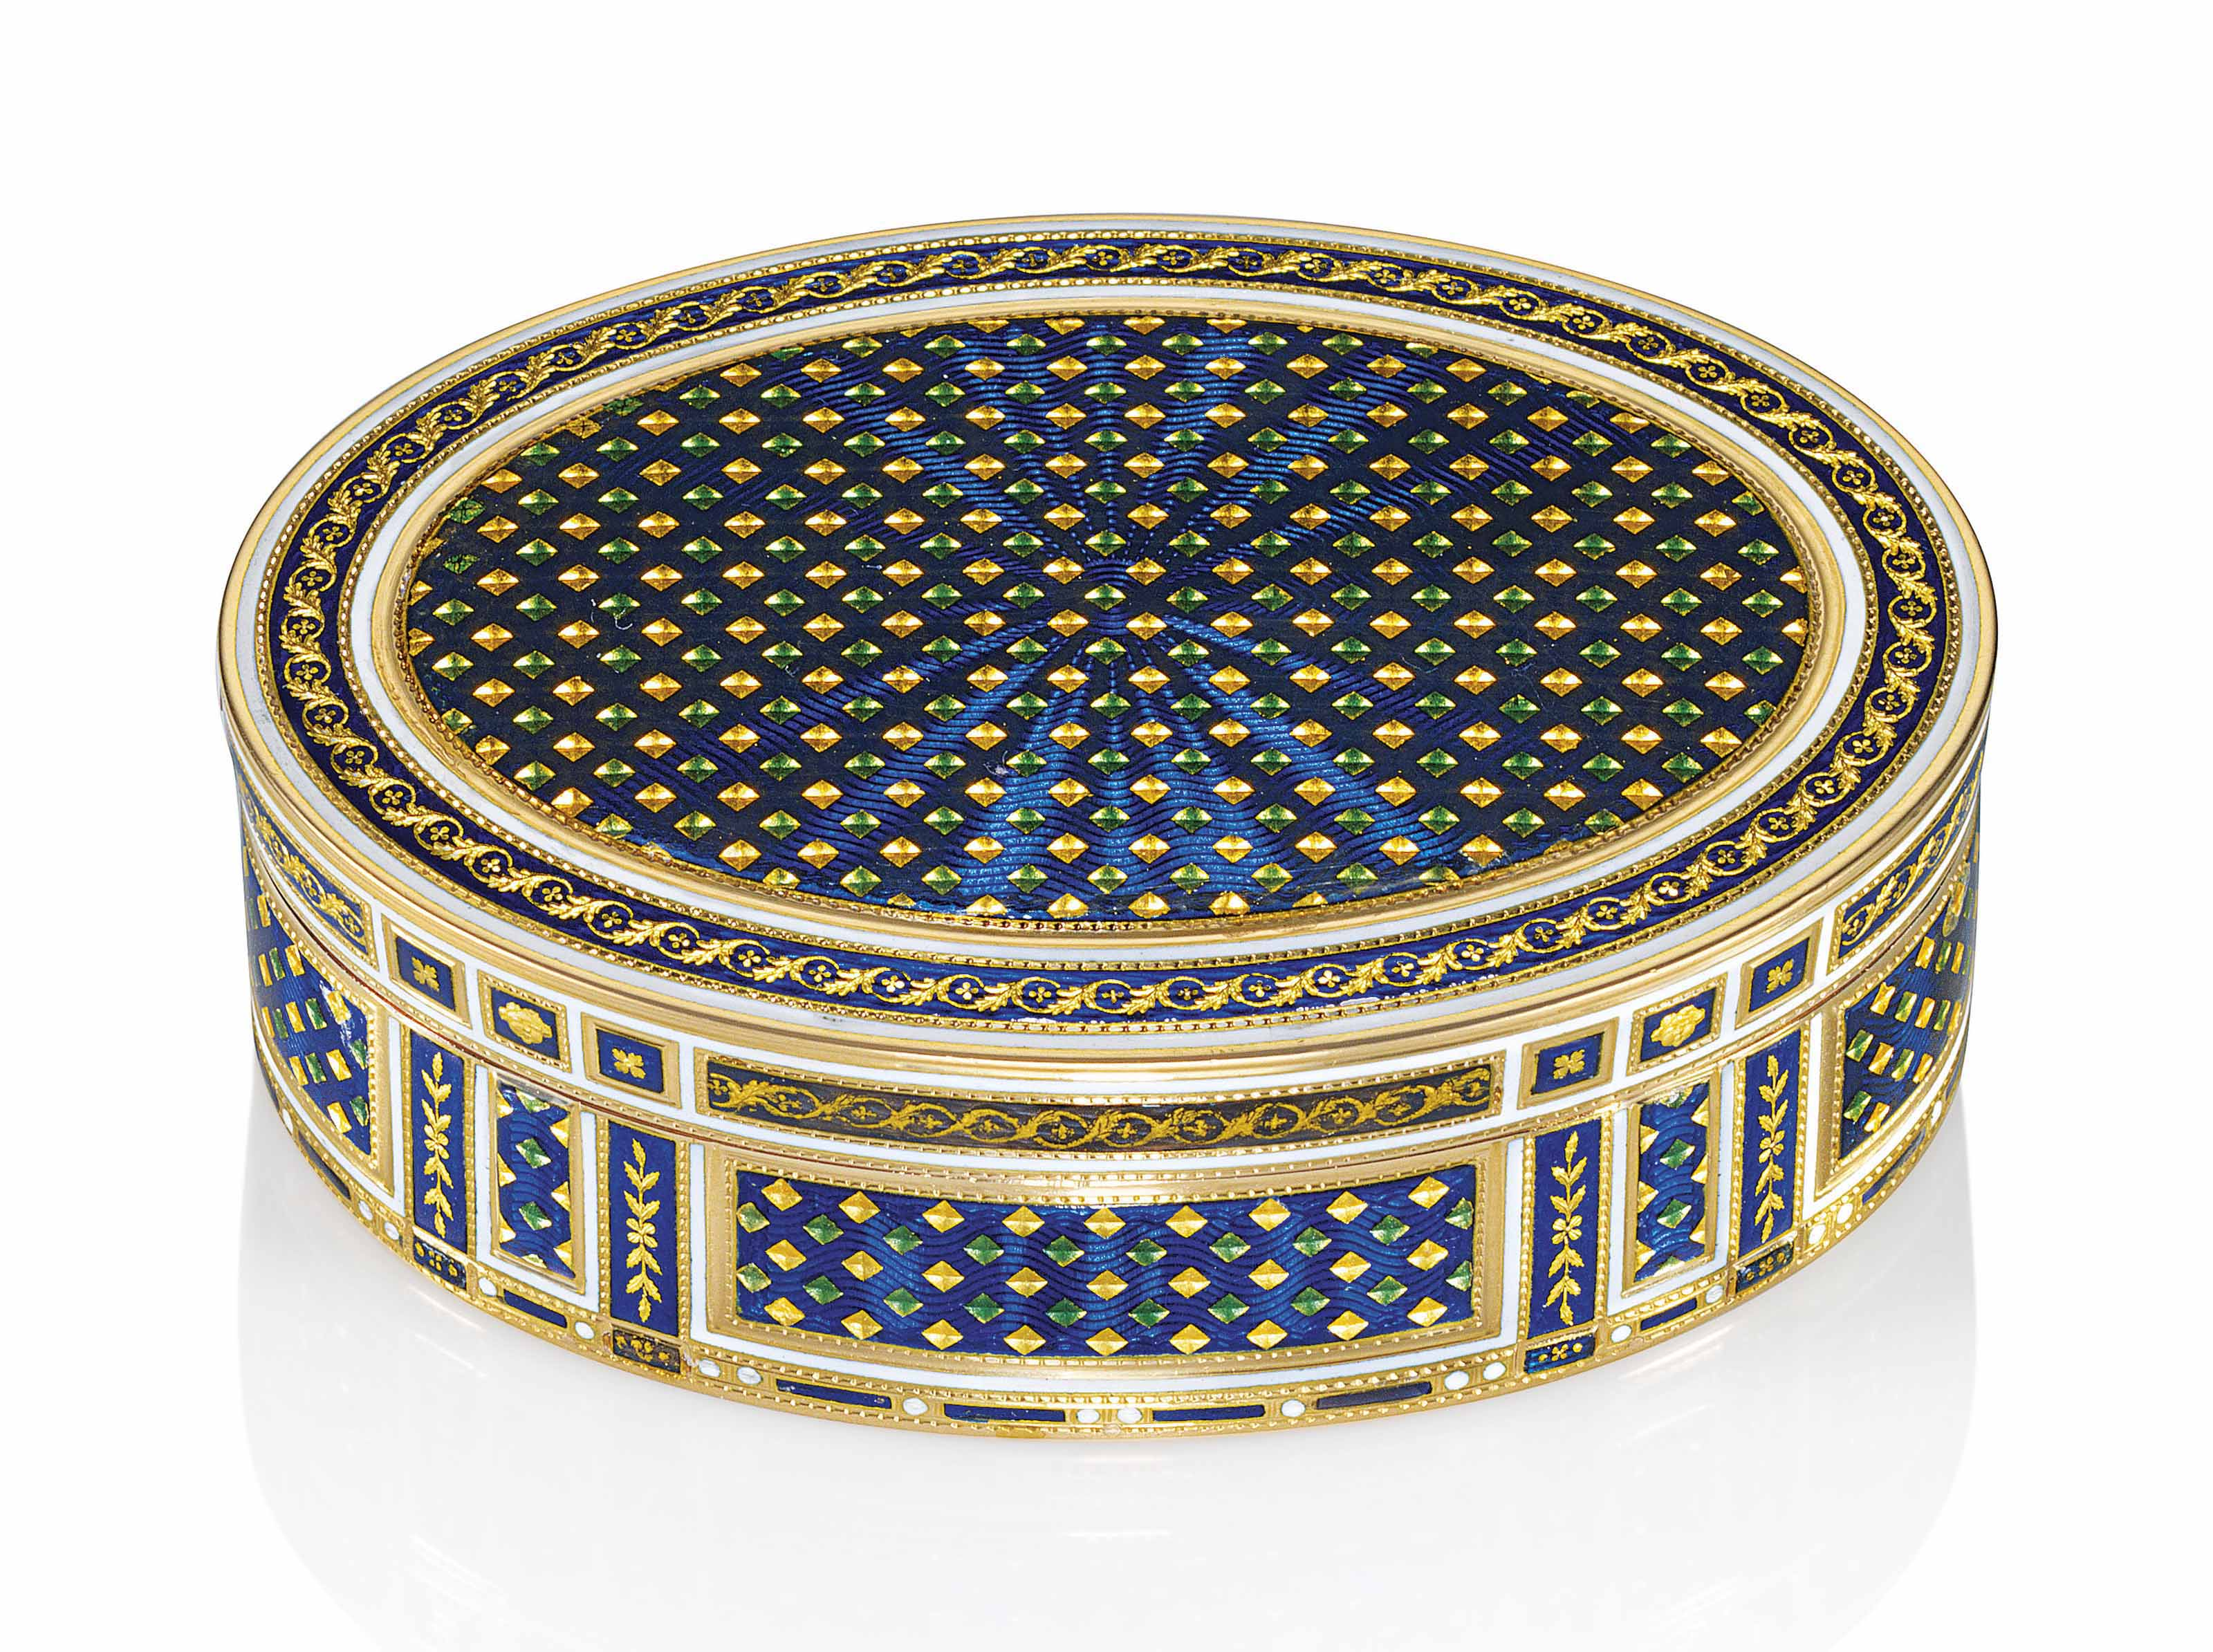 A LOUIS XVI ENAMELLED GOLD SNUFF-BOX